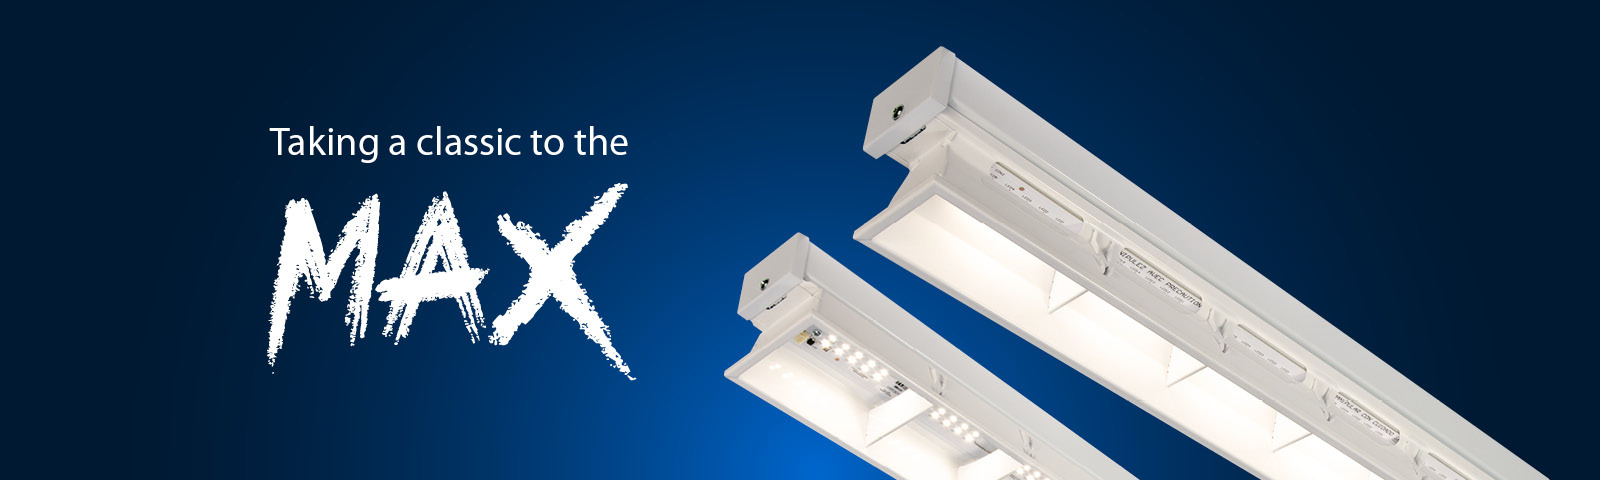 Kanby Max – High Performance, Low Glare Lighting for Industry gallery image